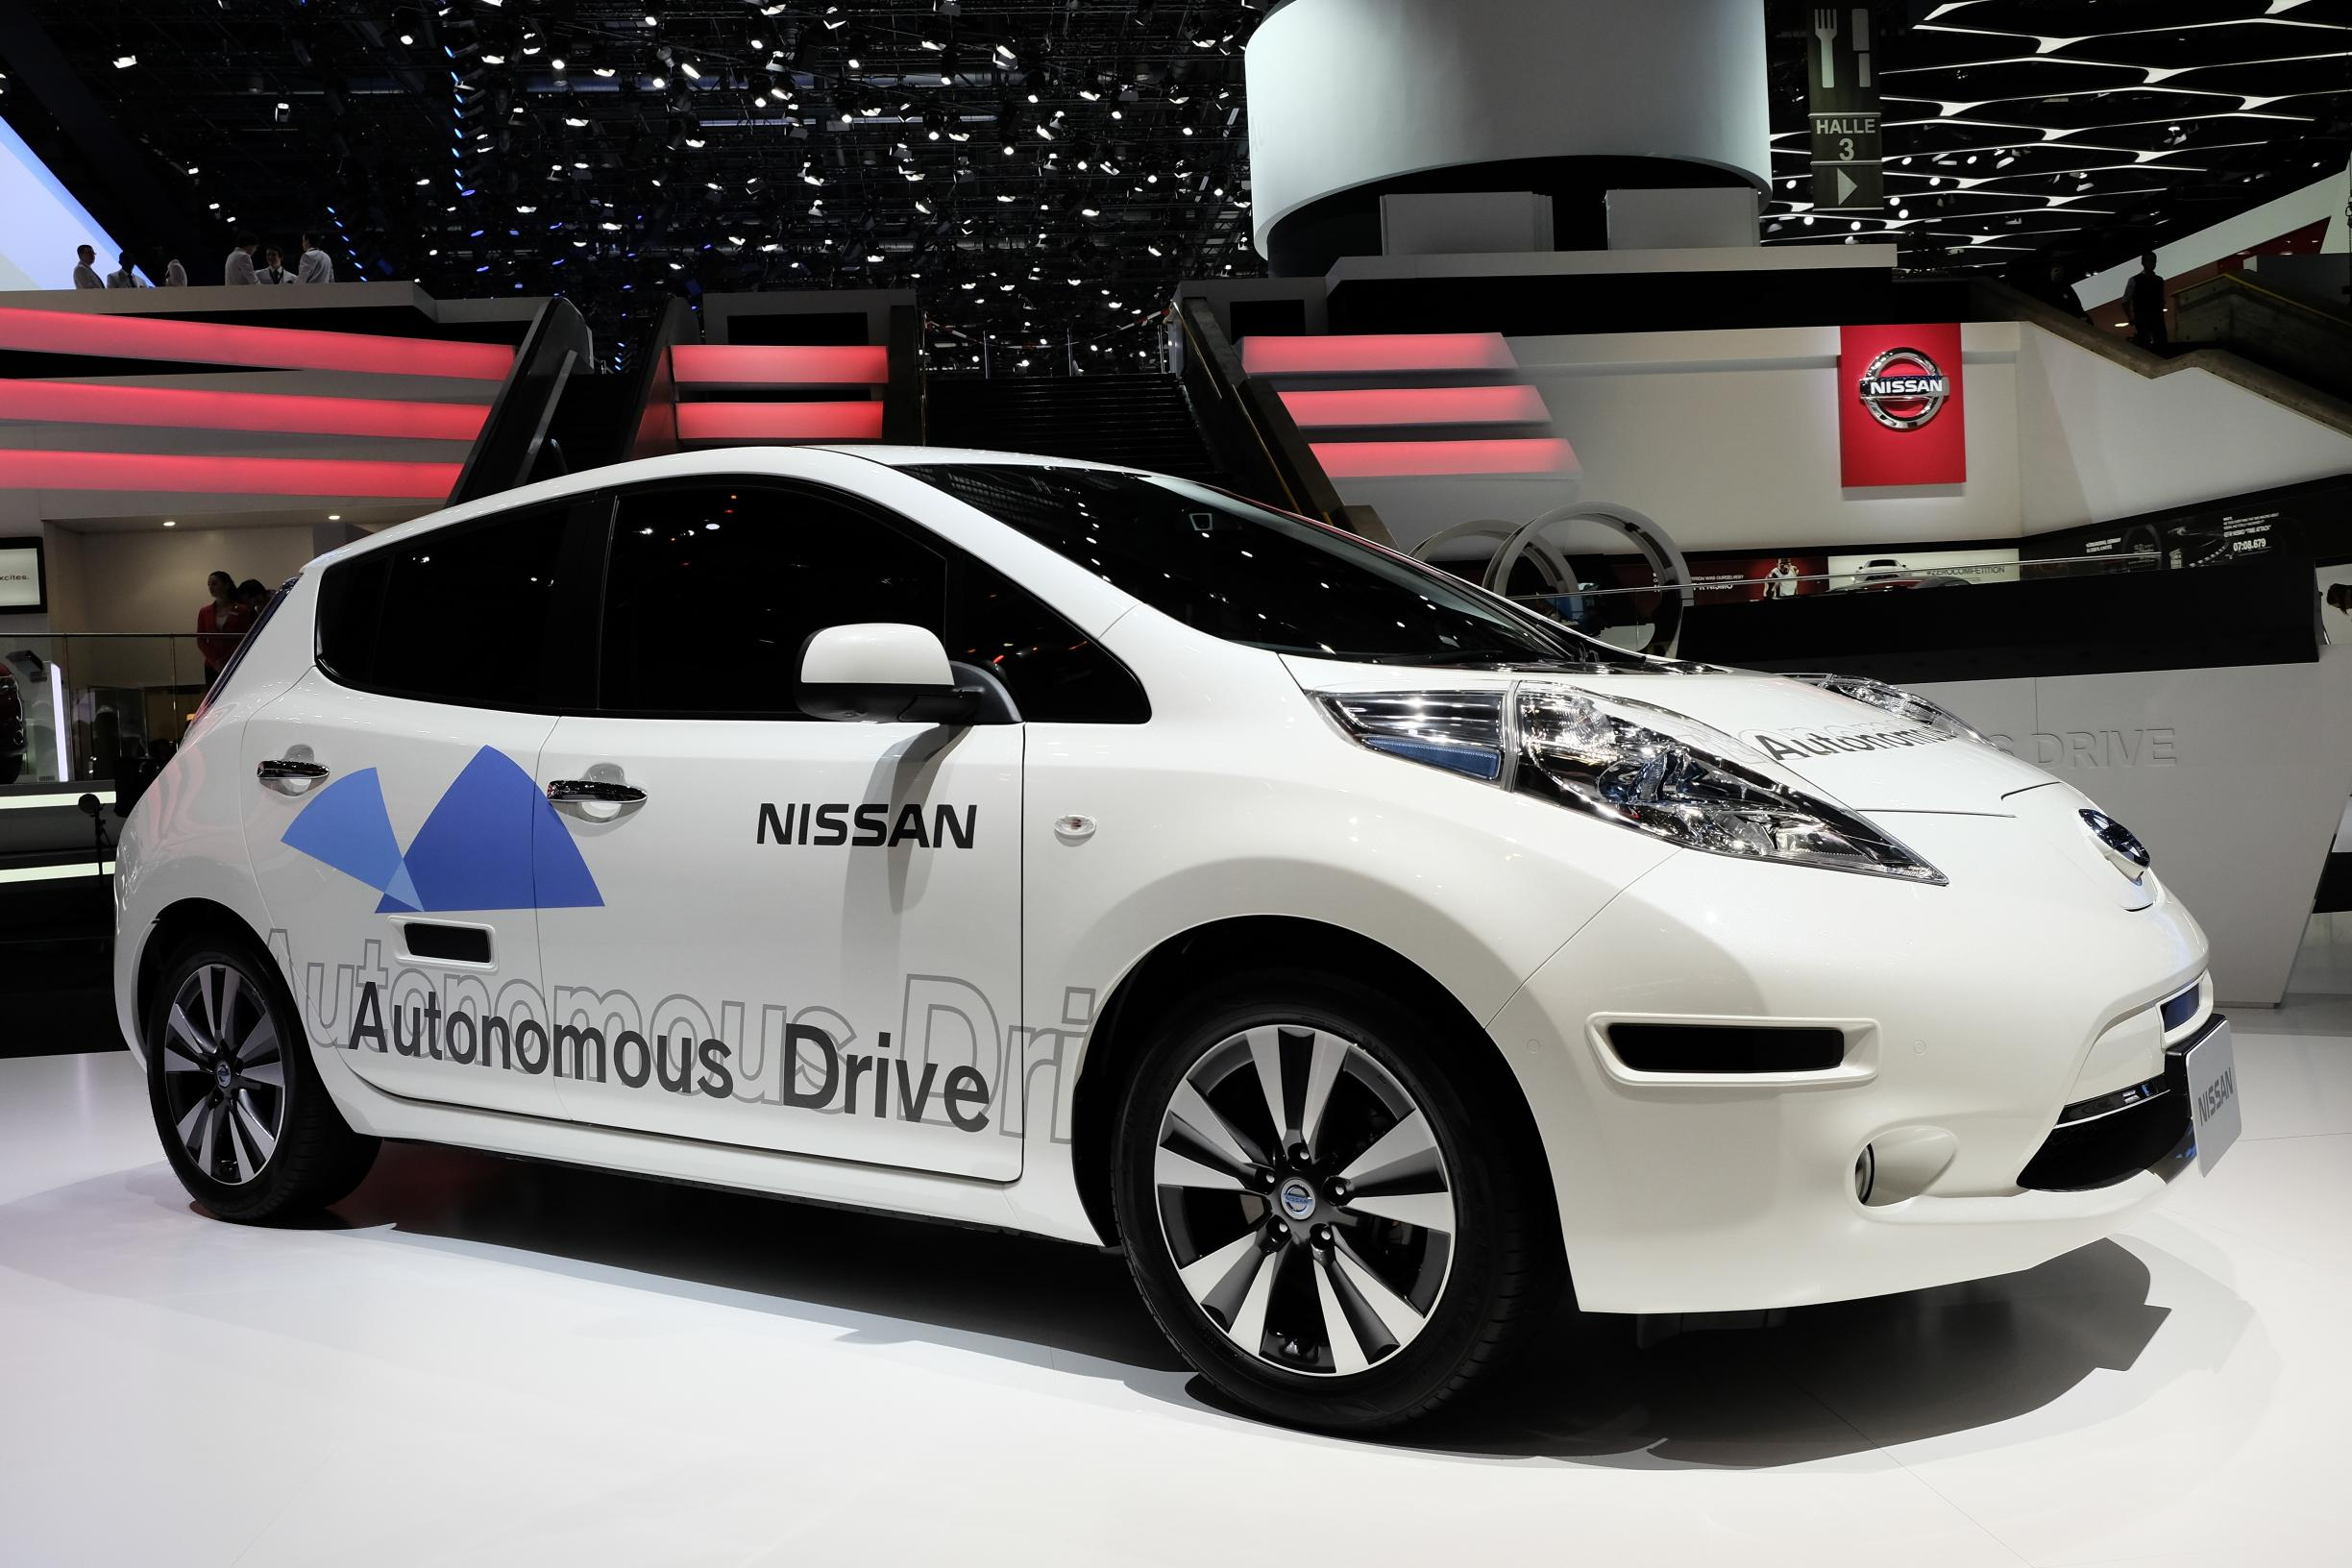 2015 Nissan LEAF Brings Free Public Charging to Chicago